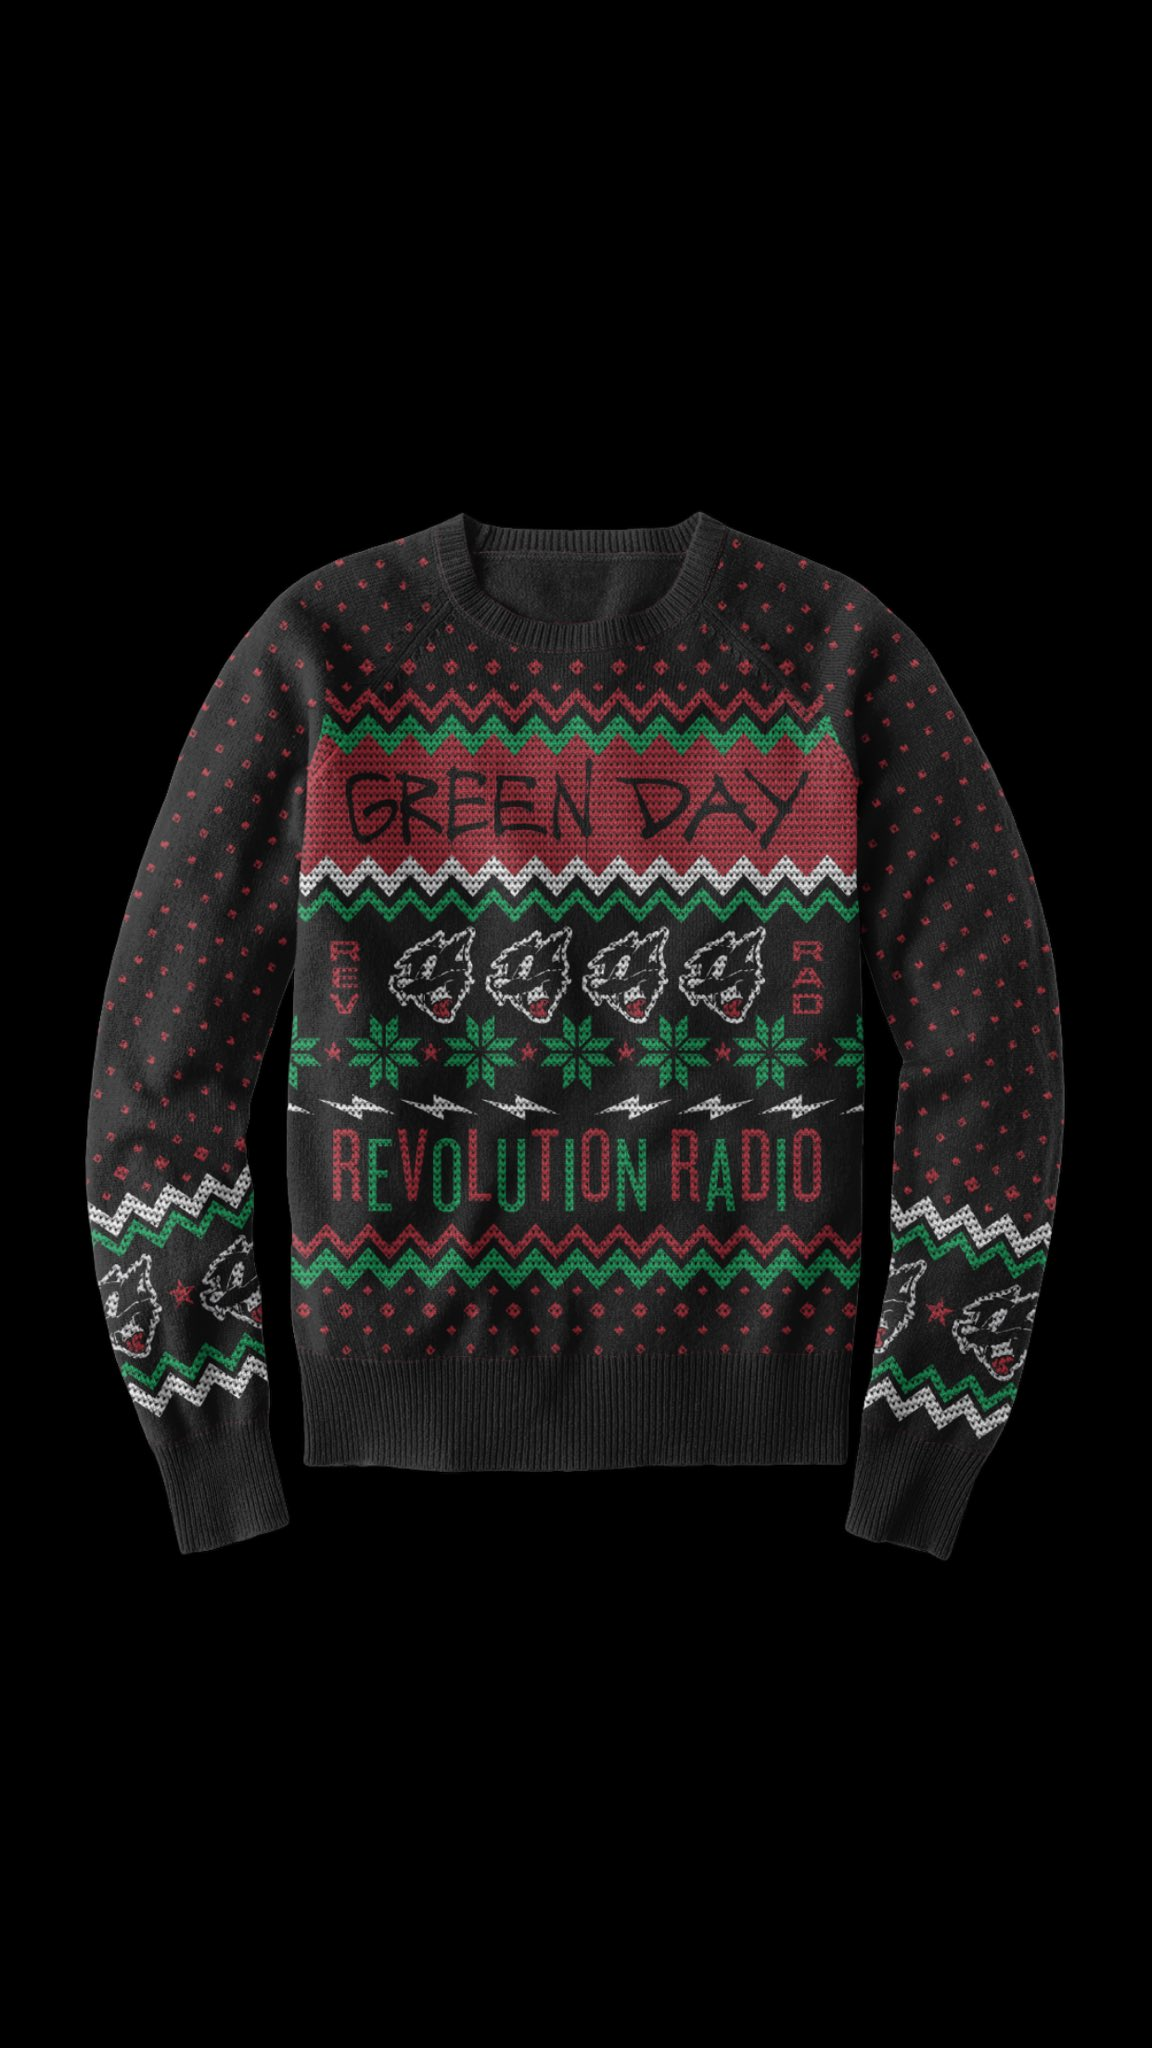 New Rev Rad Ugly Christmas Sweater Available For Pre-Order Now! Get yours here https://t.co/eOtqtLJkgf https://t.co/ojz2qxmAxb